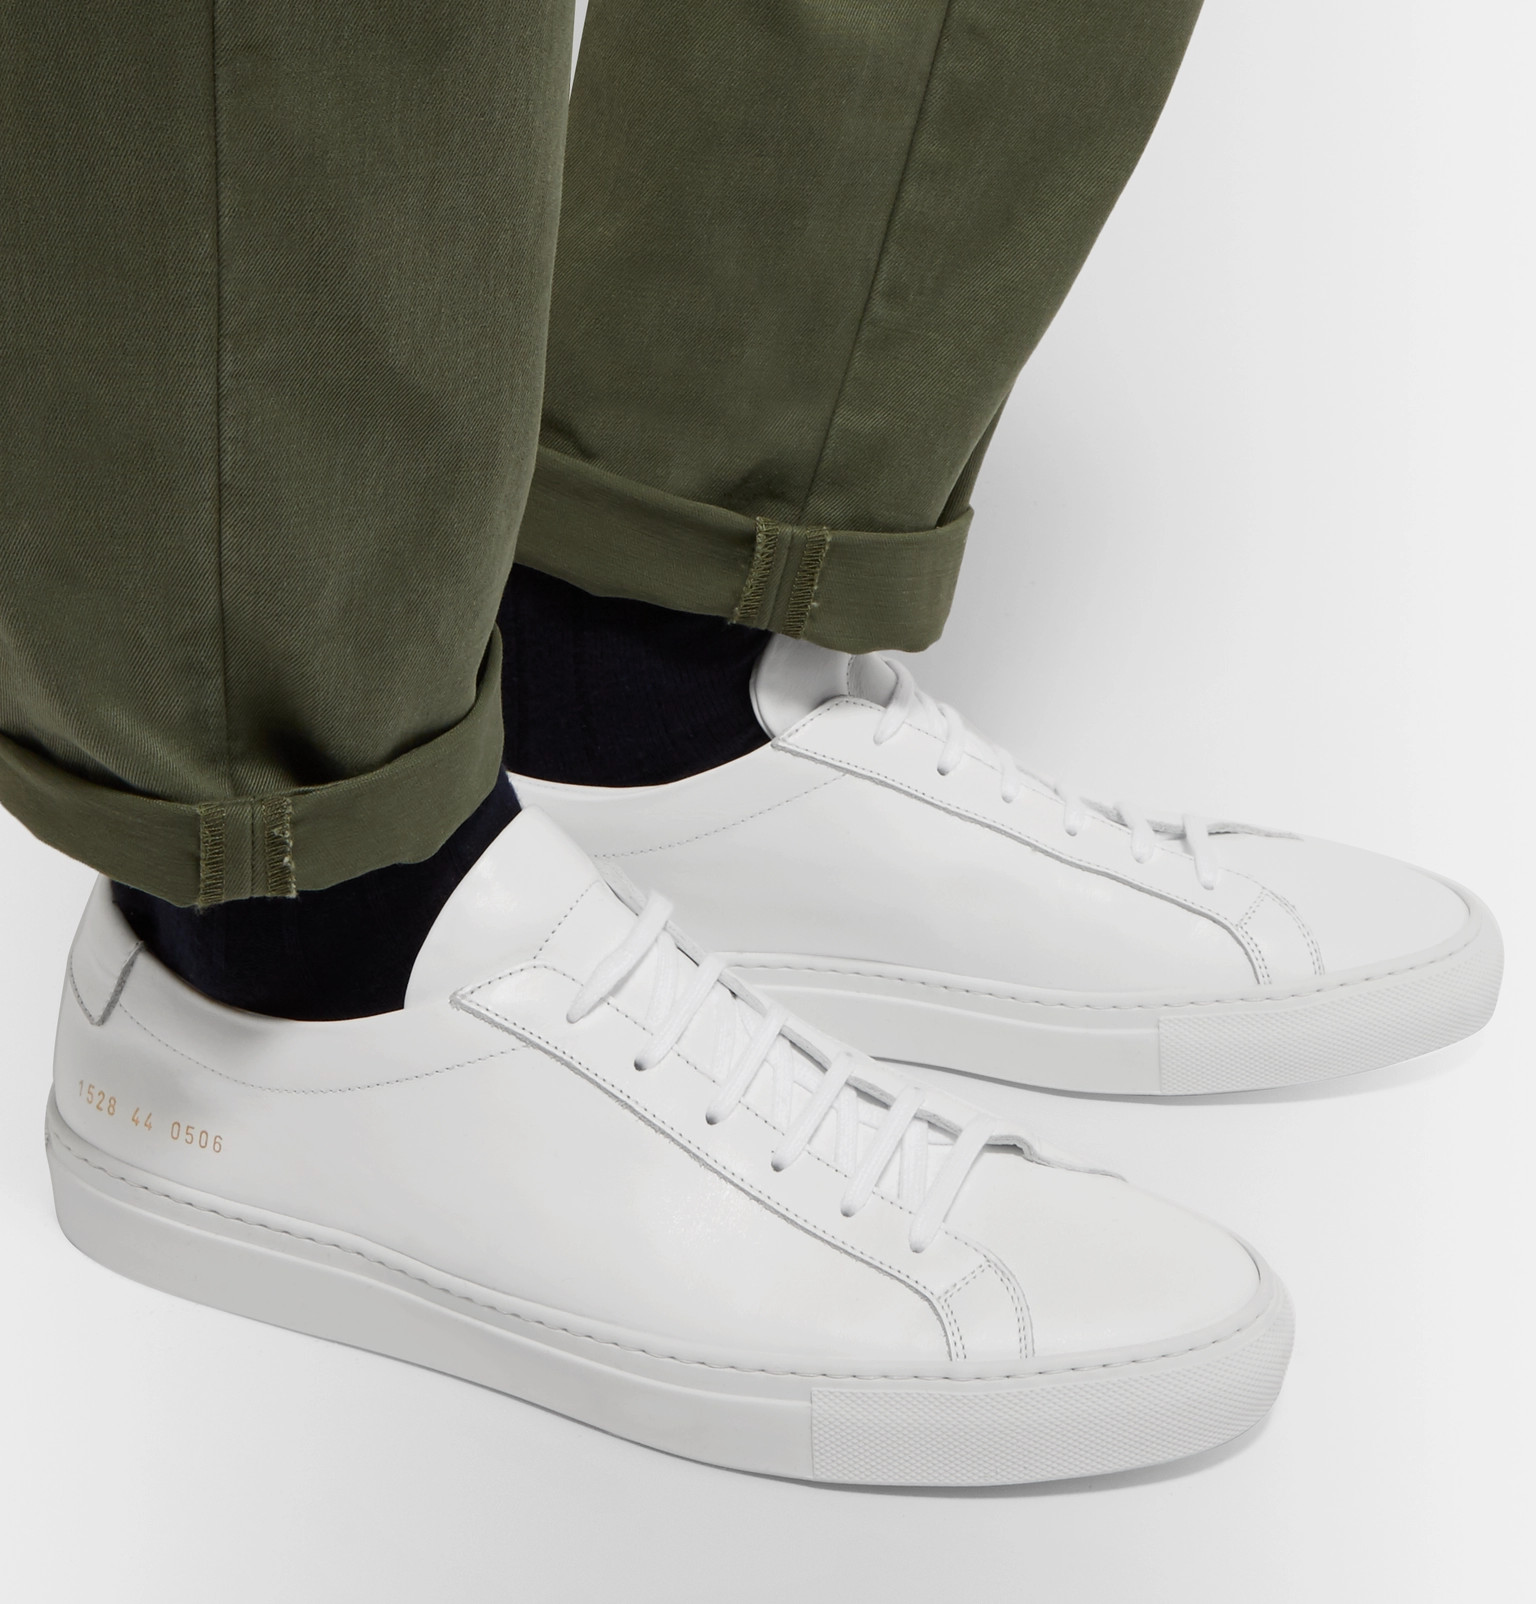 4b0931b9620b Common Projects - Original Achilles Leather Sneakers